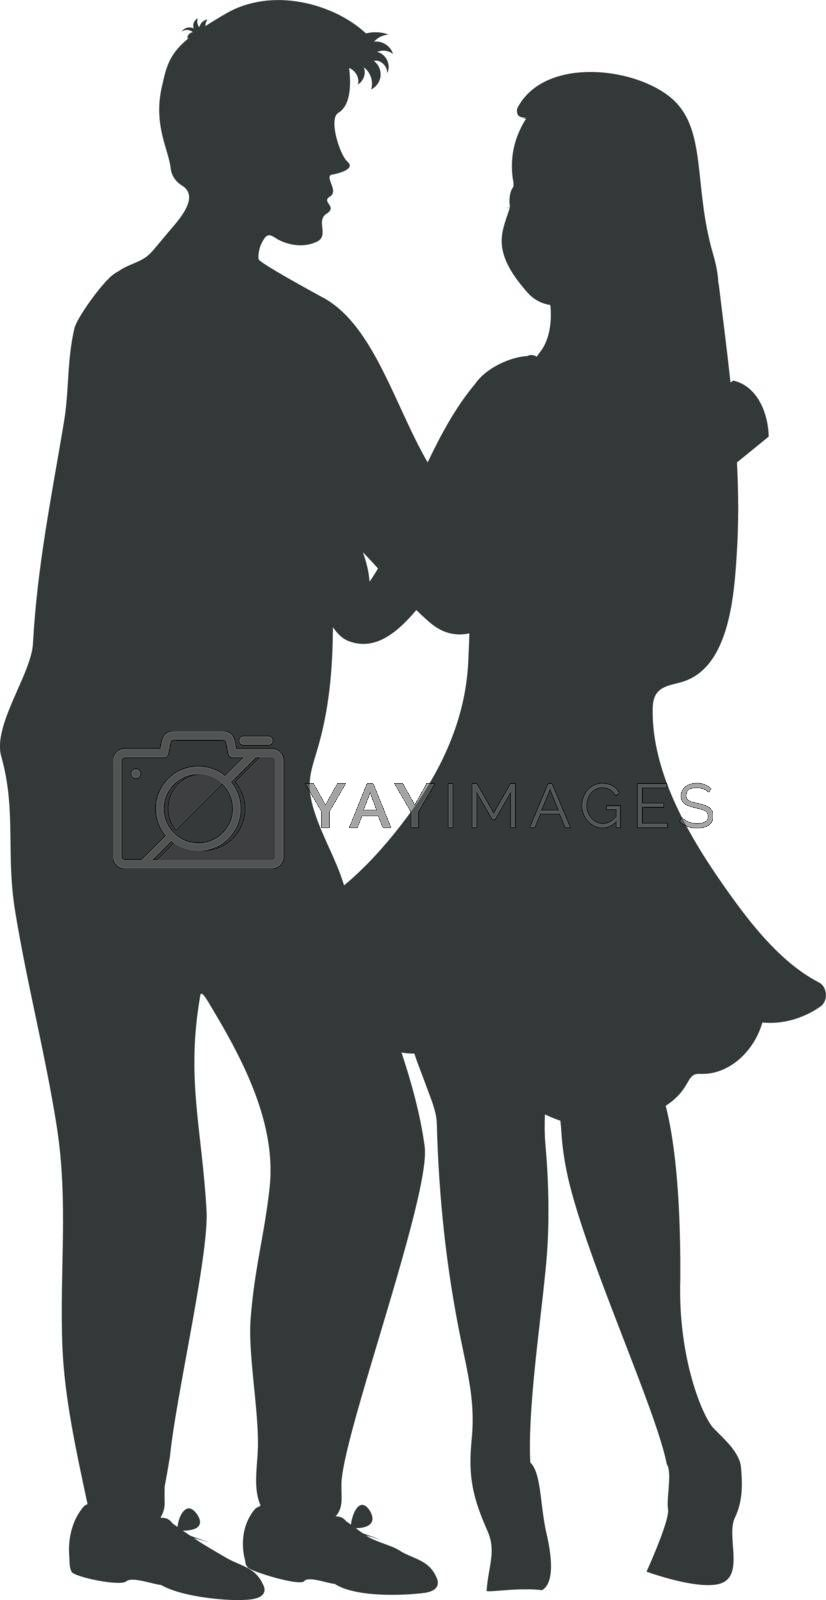 Silhouette | Couples walking, Couple picture poses, Walk